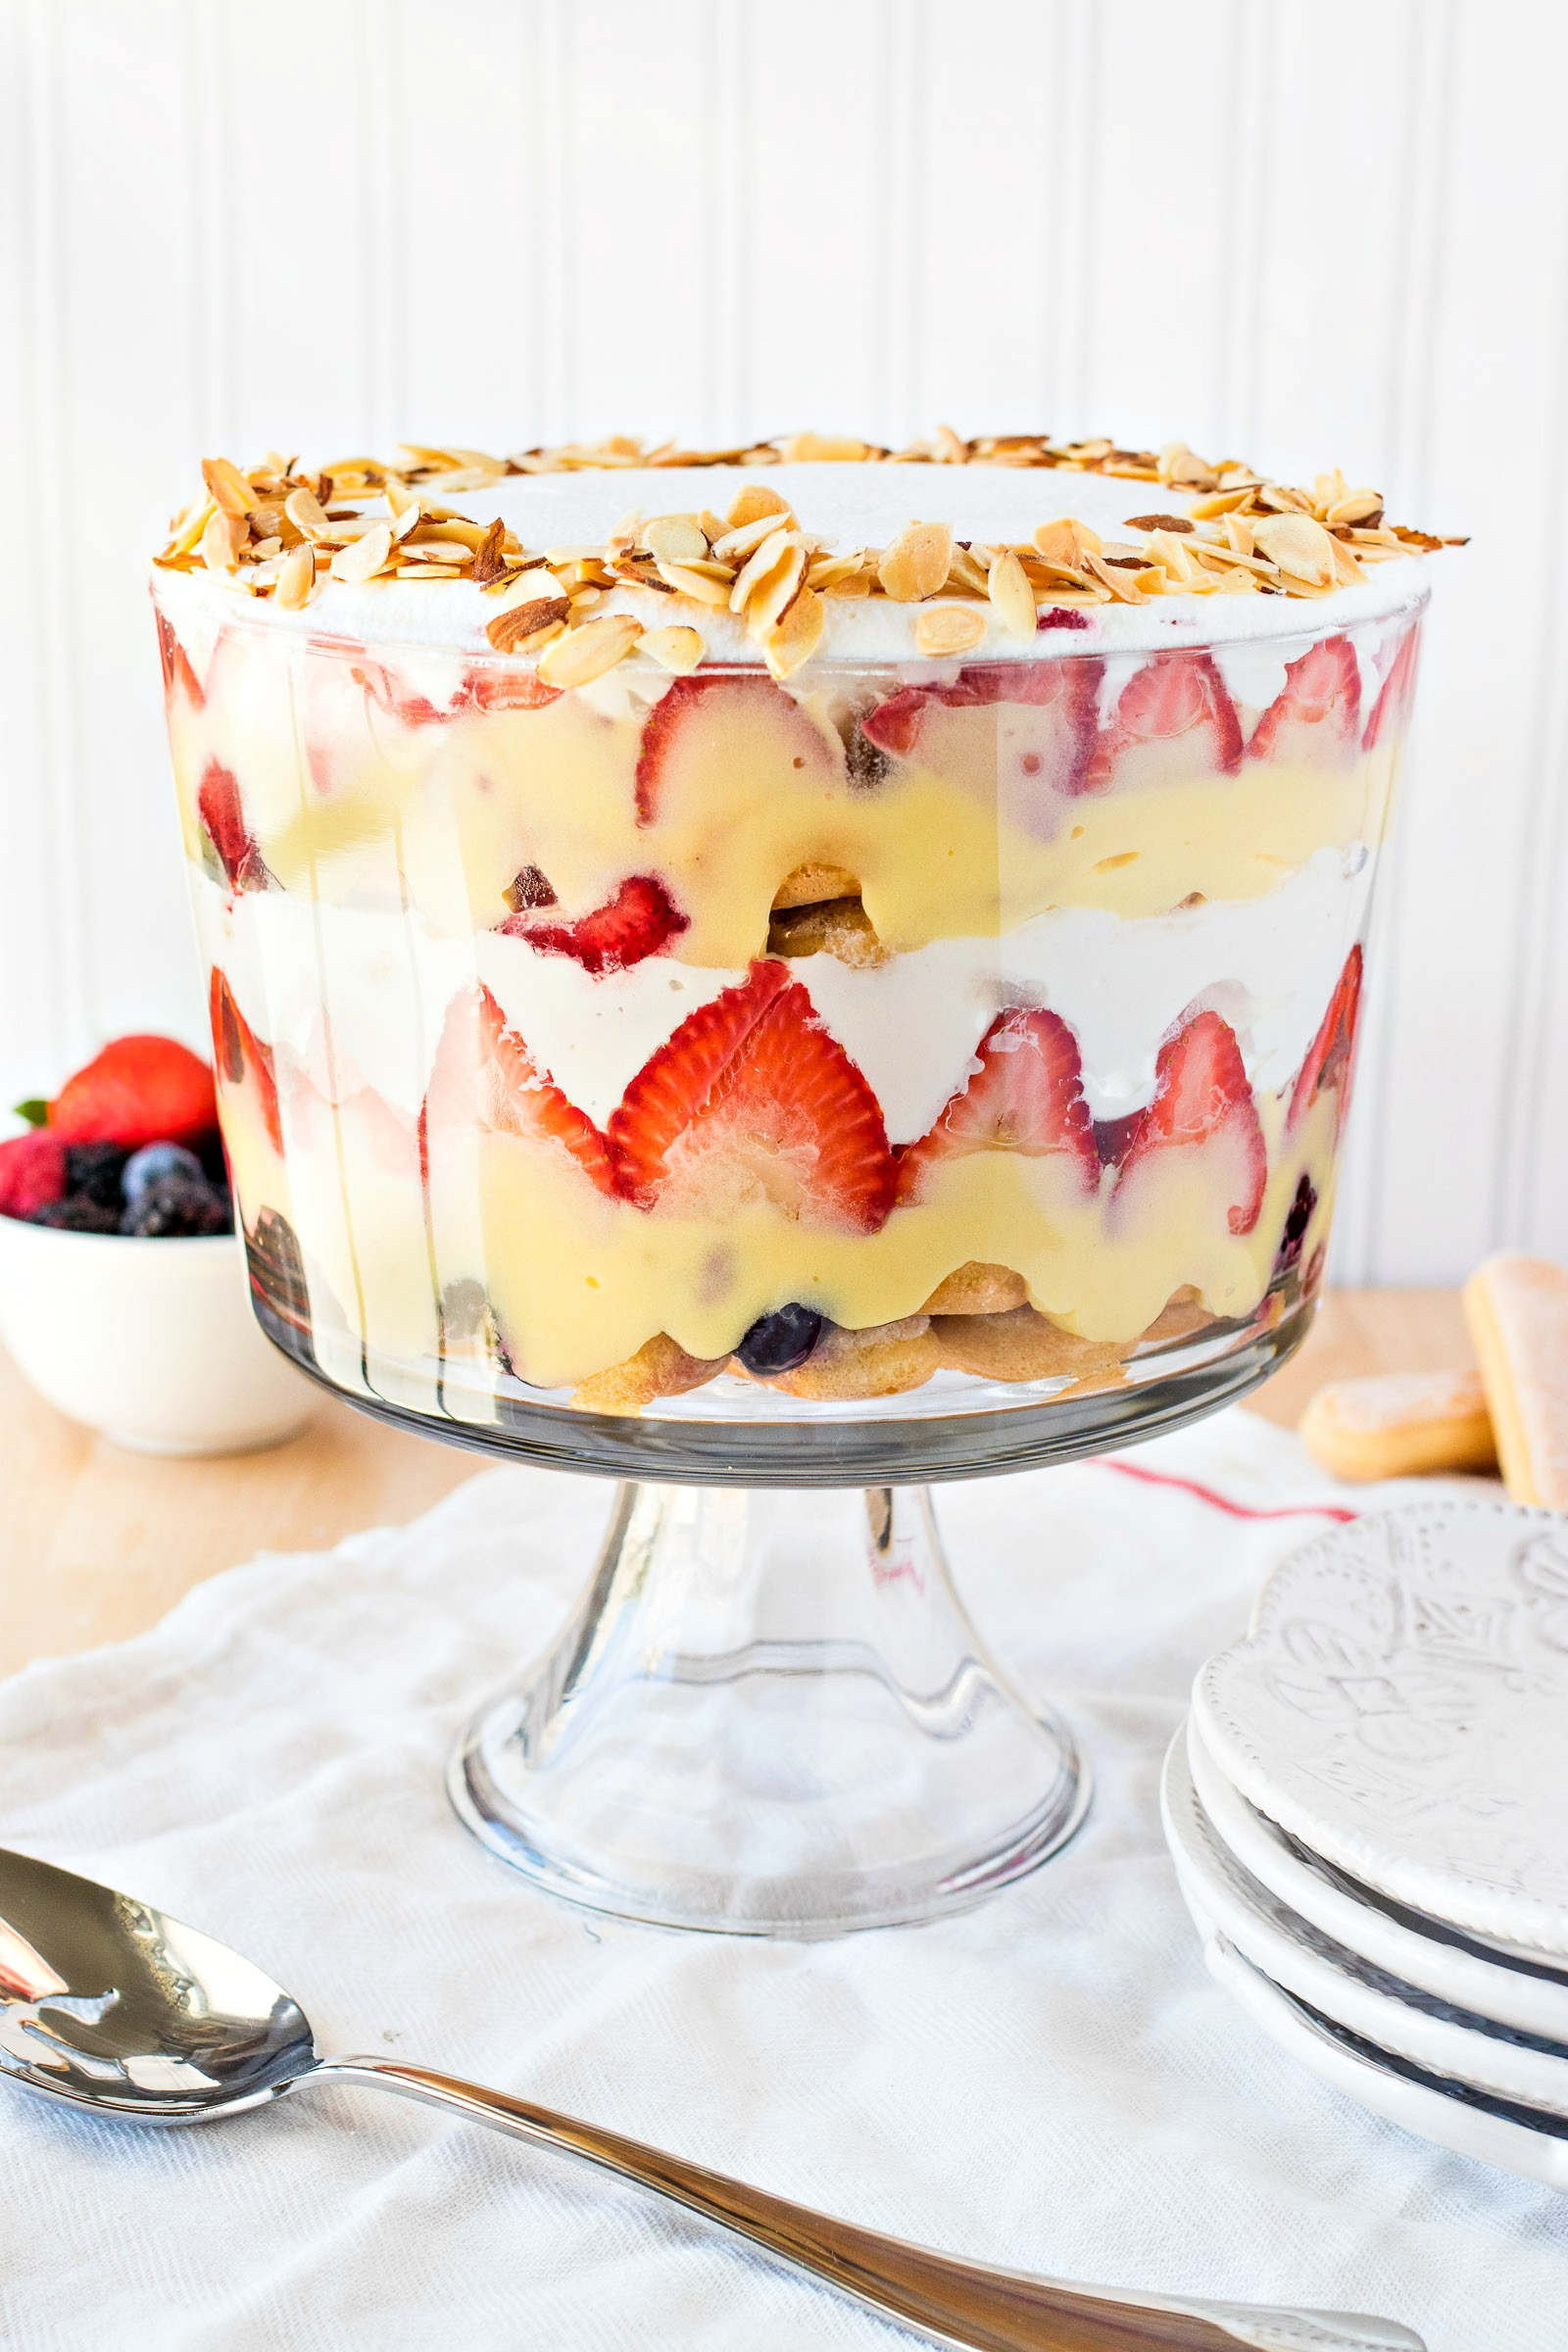 Traditional English Trifle Cpa Certified Pastry Aficionado